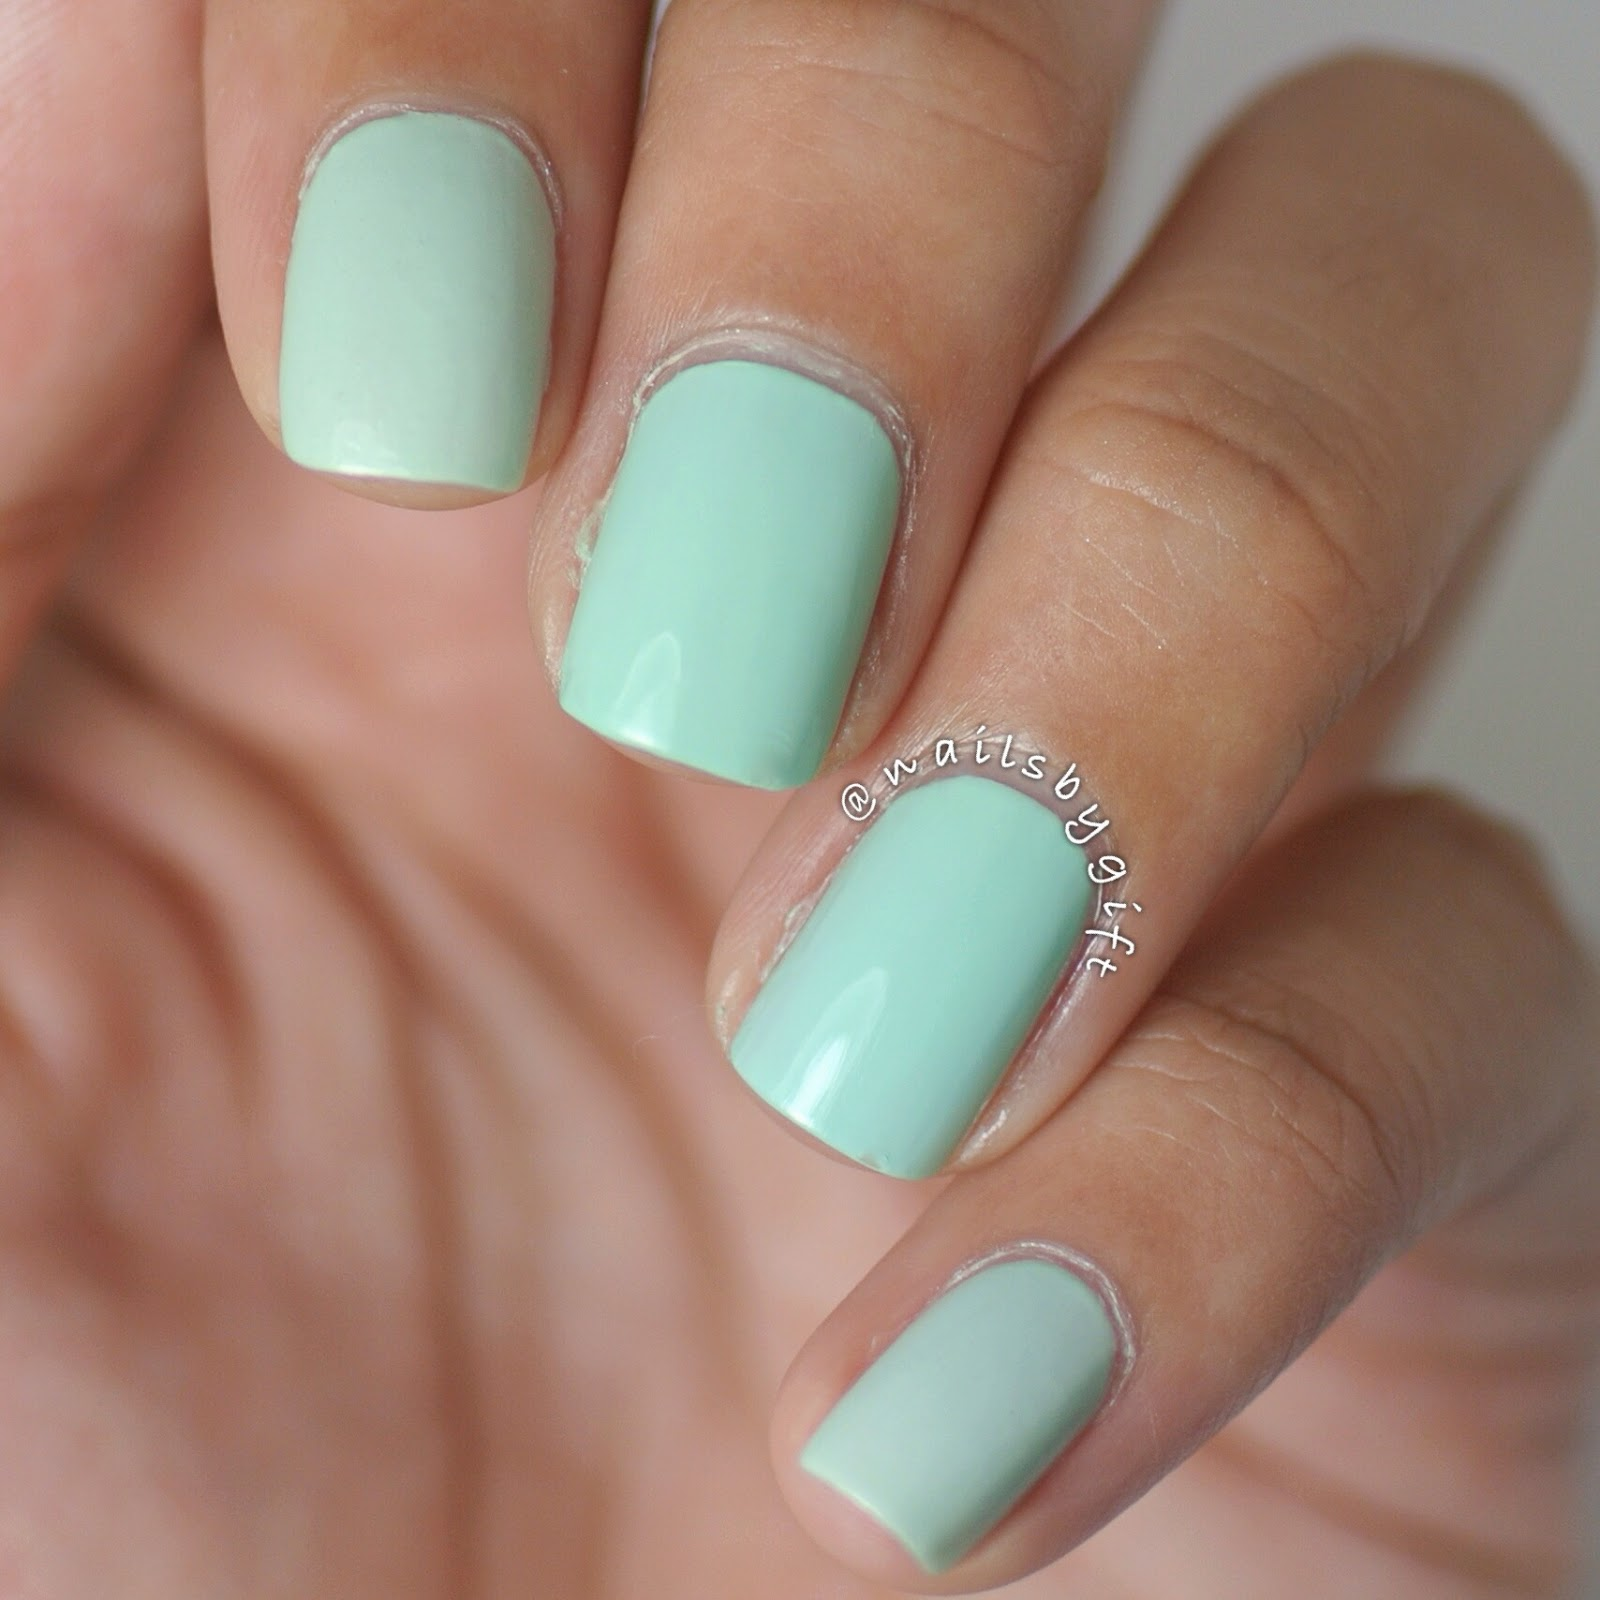 Nails by Gift: China Glaze Spring 2013 Swatch + Comparison Review